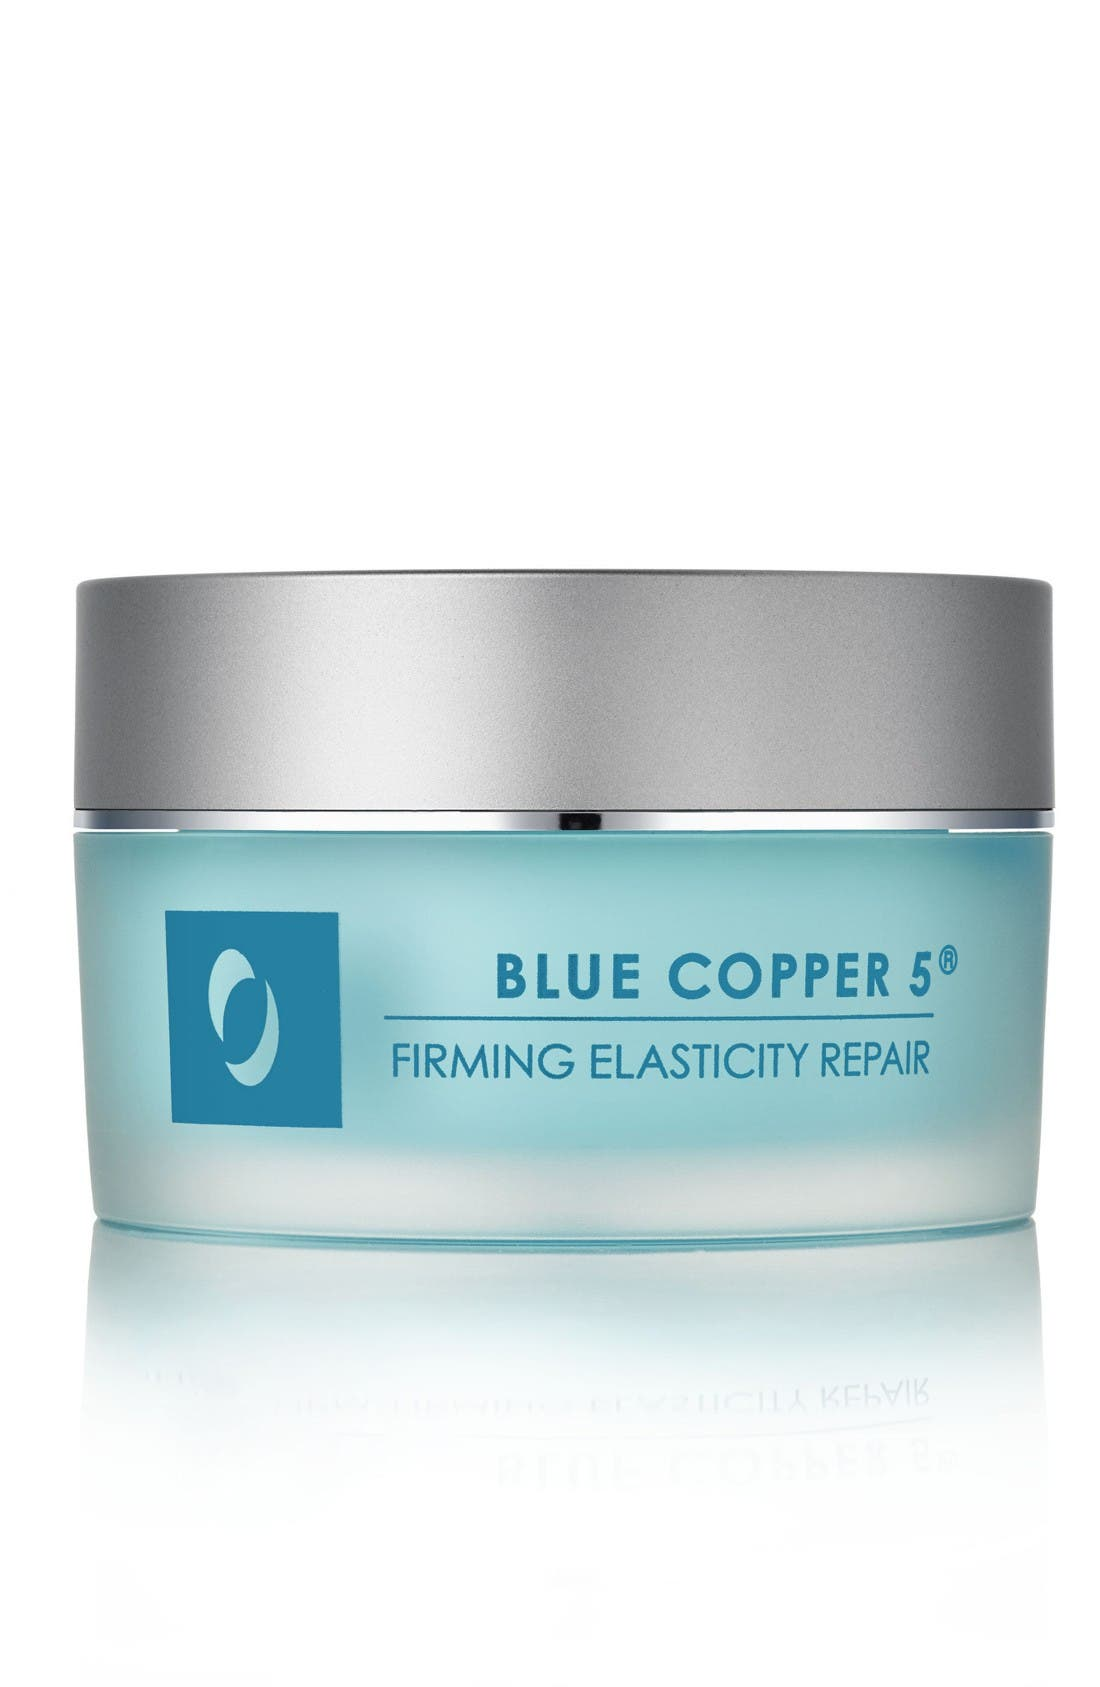 Osmotics Cosmeceuticals Blue Copper 5 Firming Elasticity Repair